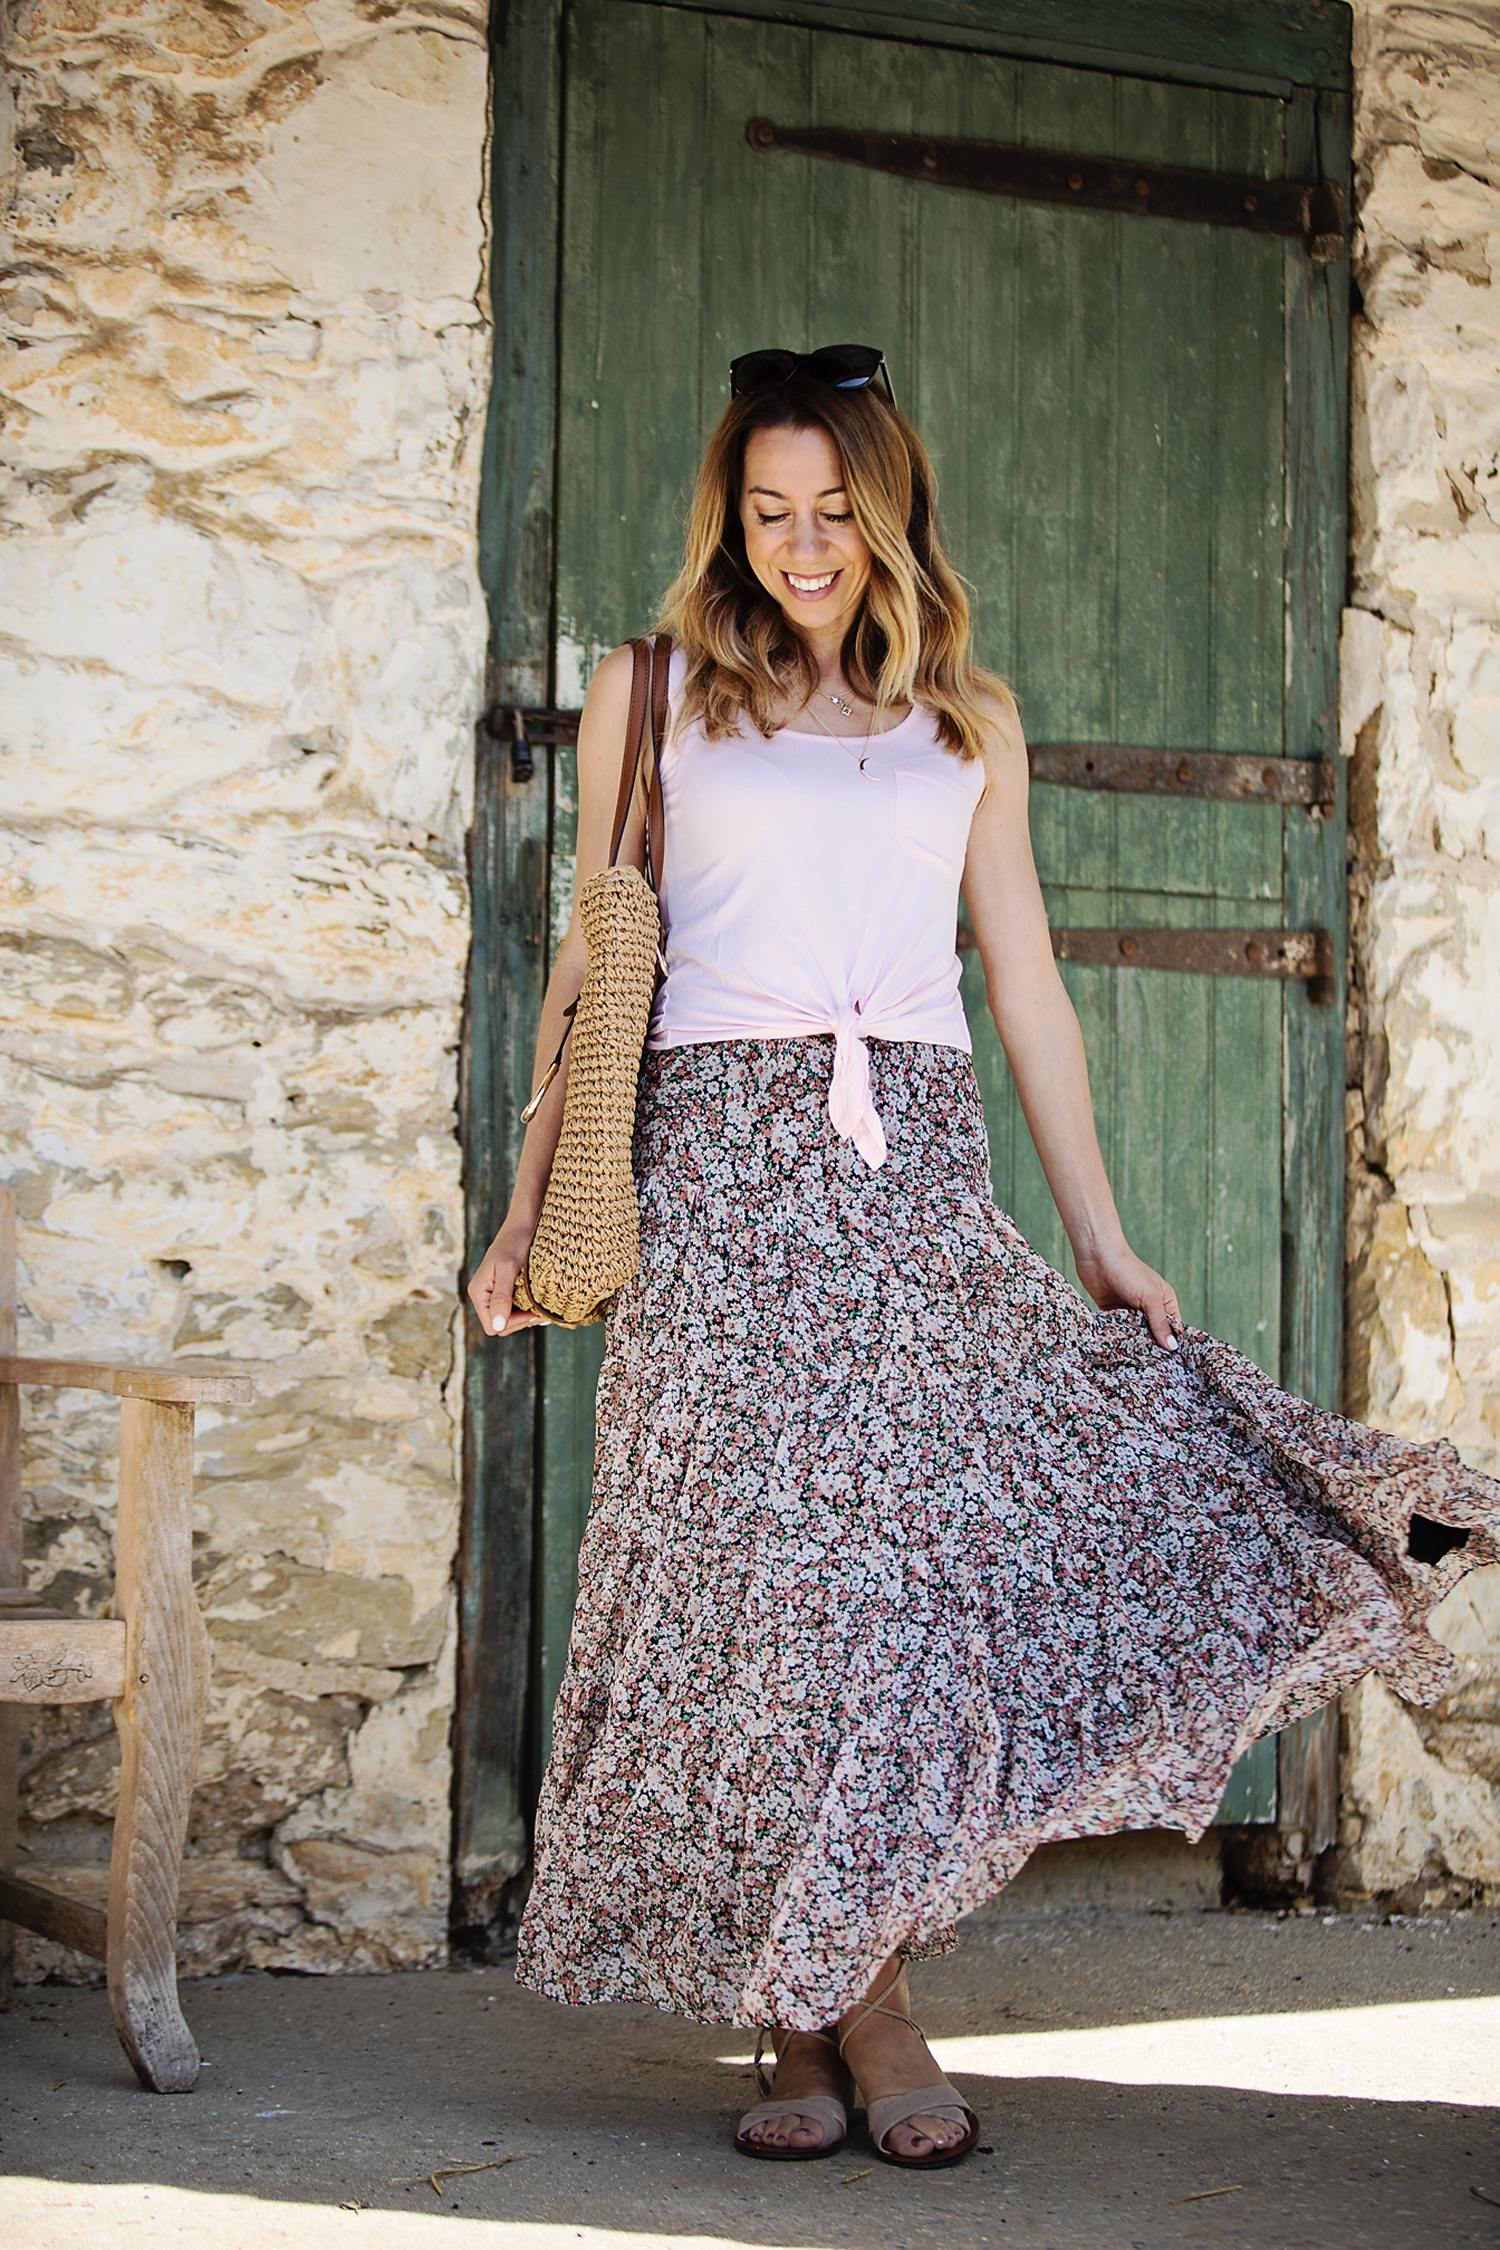 The Motherchic wearing floral maxi skirt